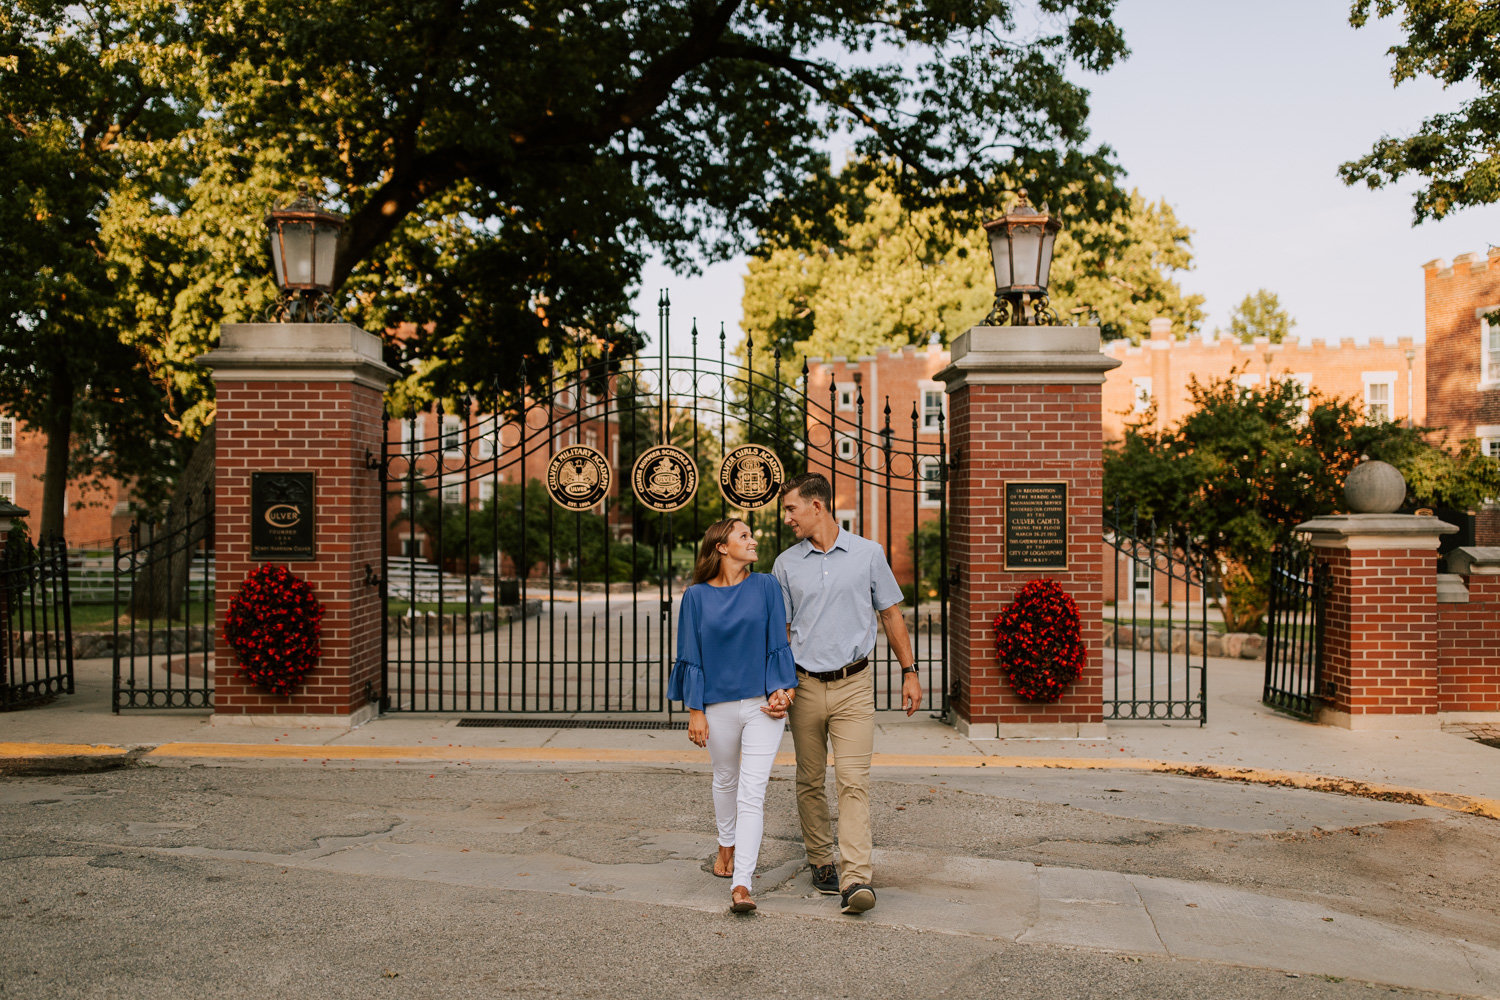 Culver-Military-Academy-Engagement-Session-Indiana-11